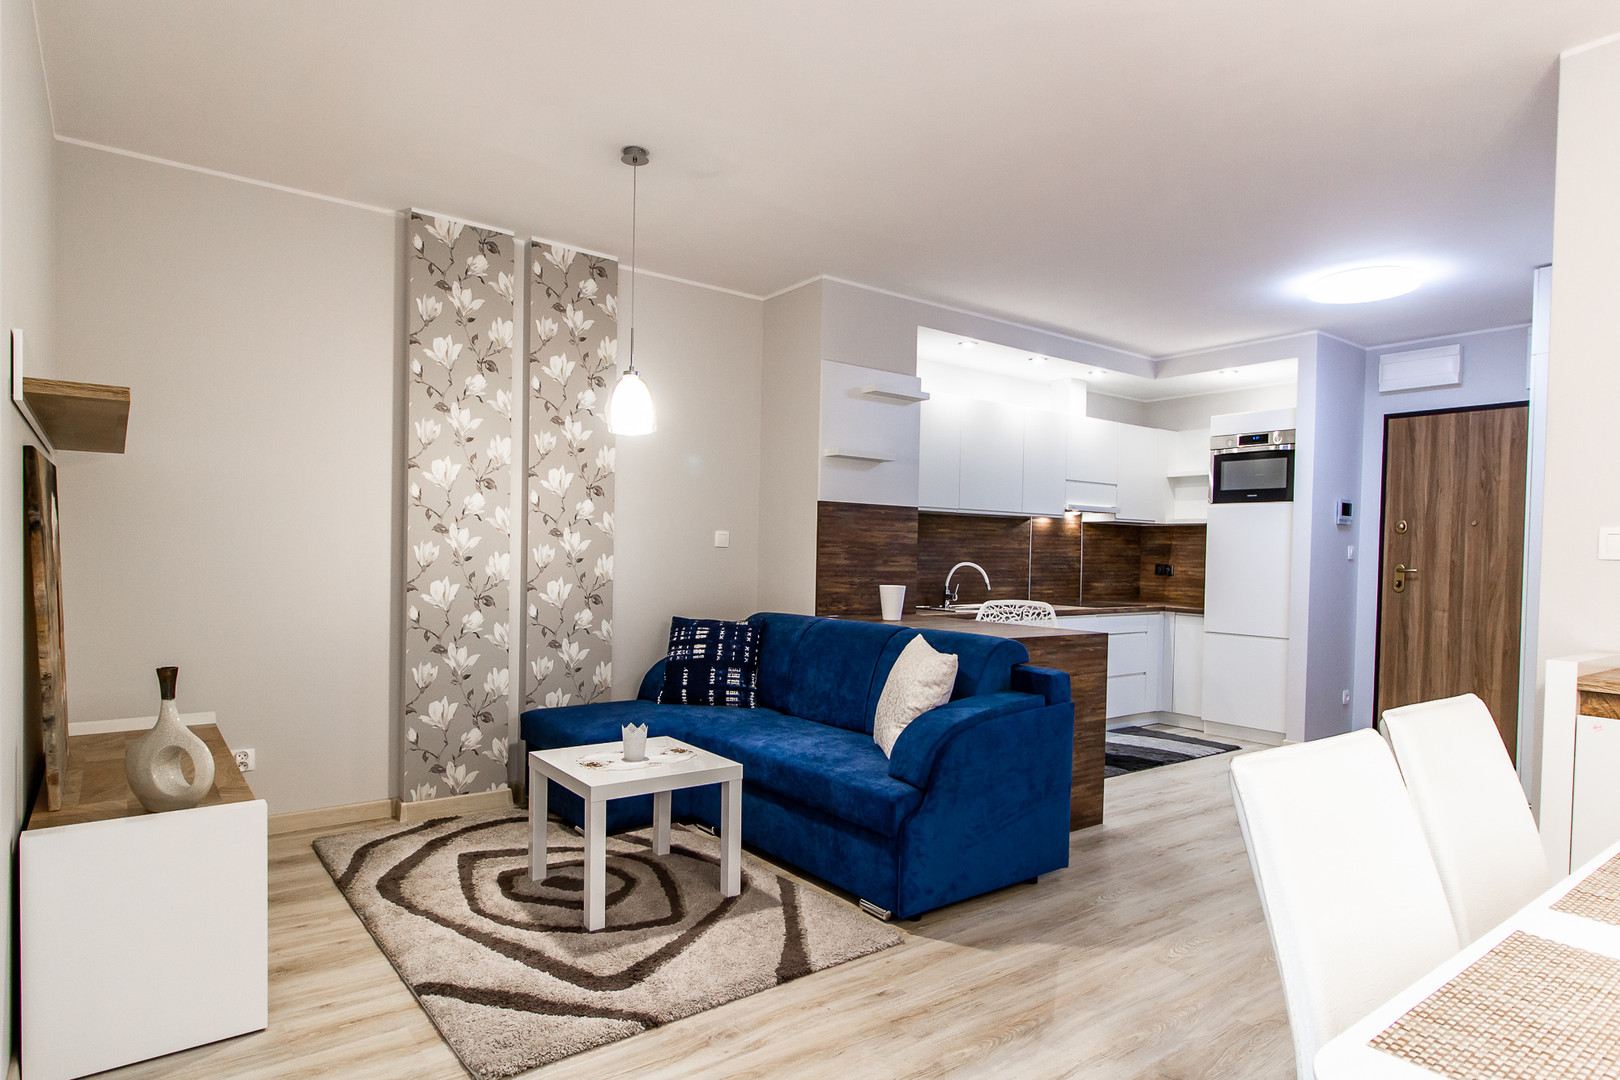 Poznan Wenecjanska flat for rent_3.jpg